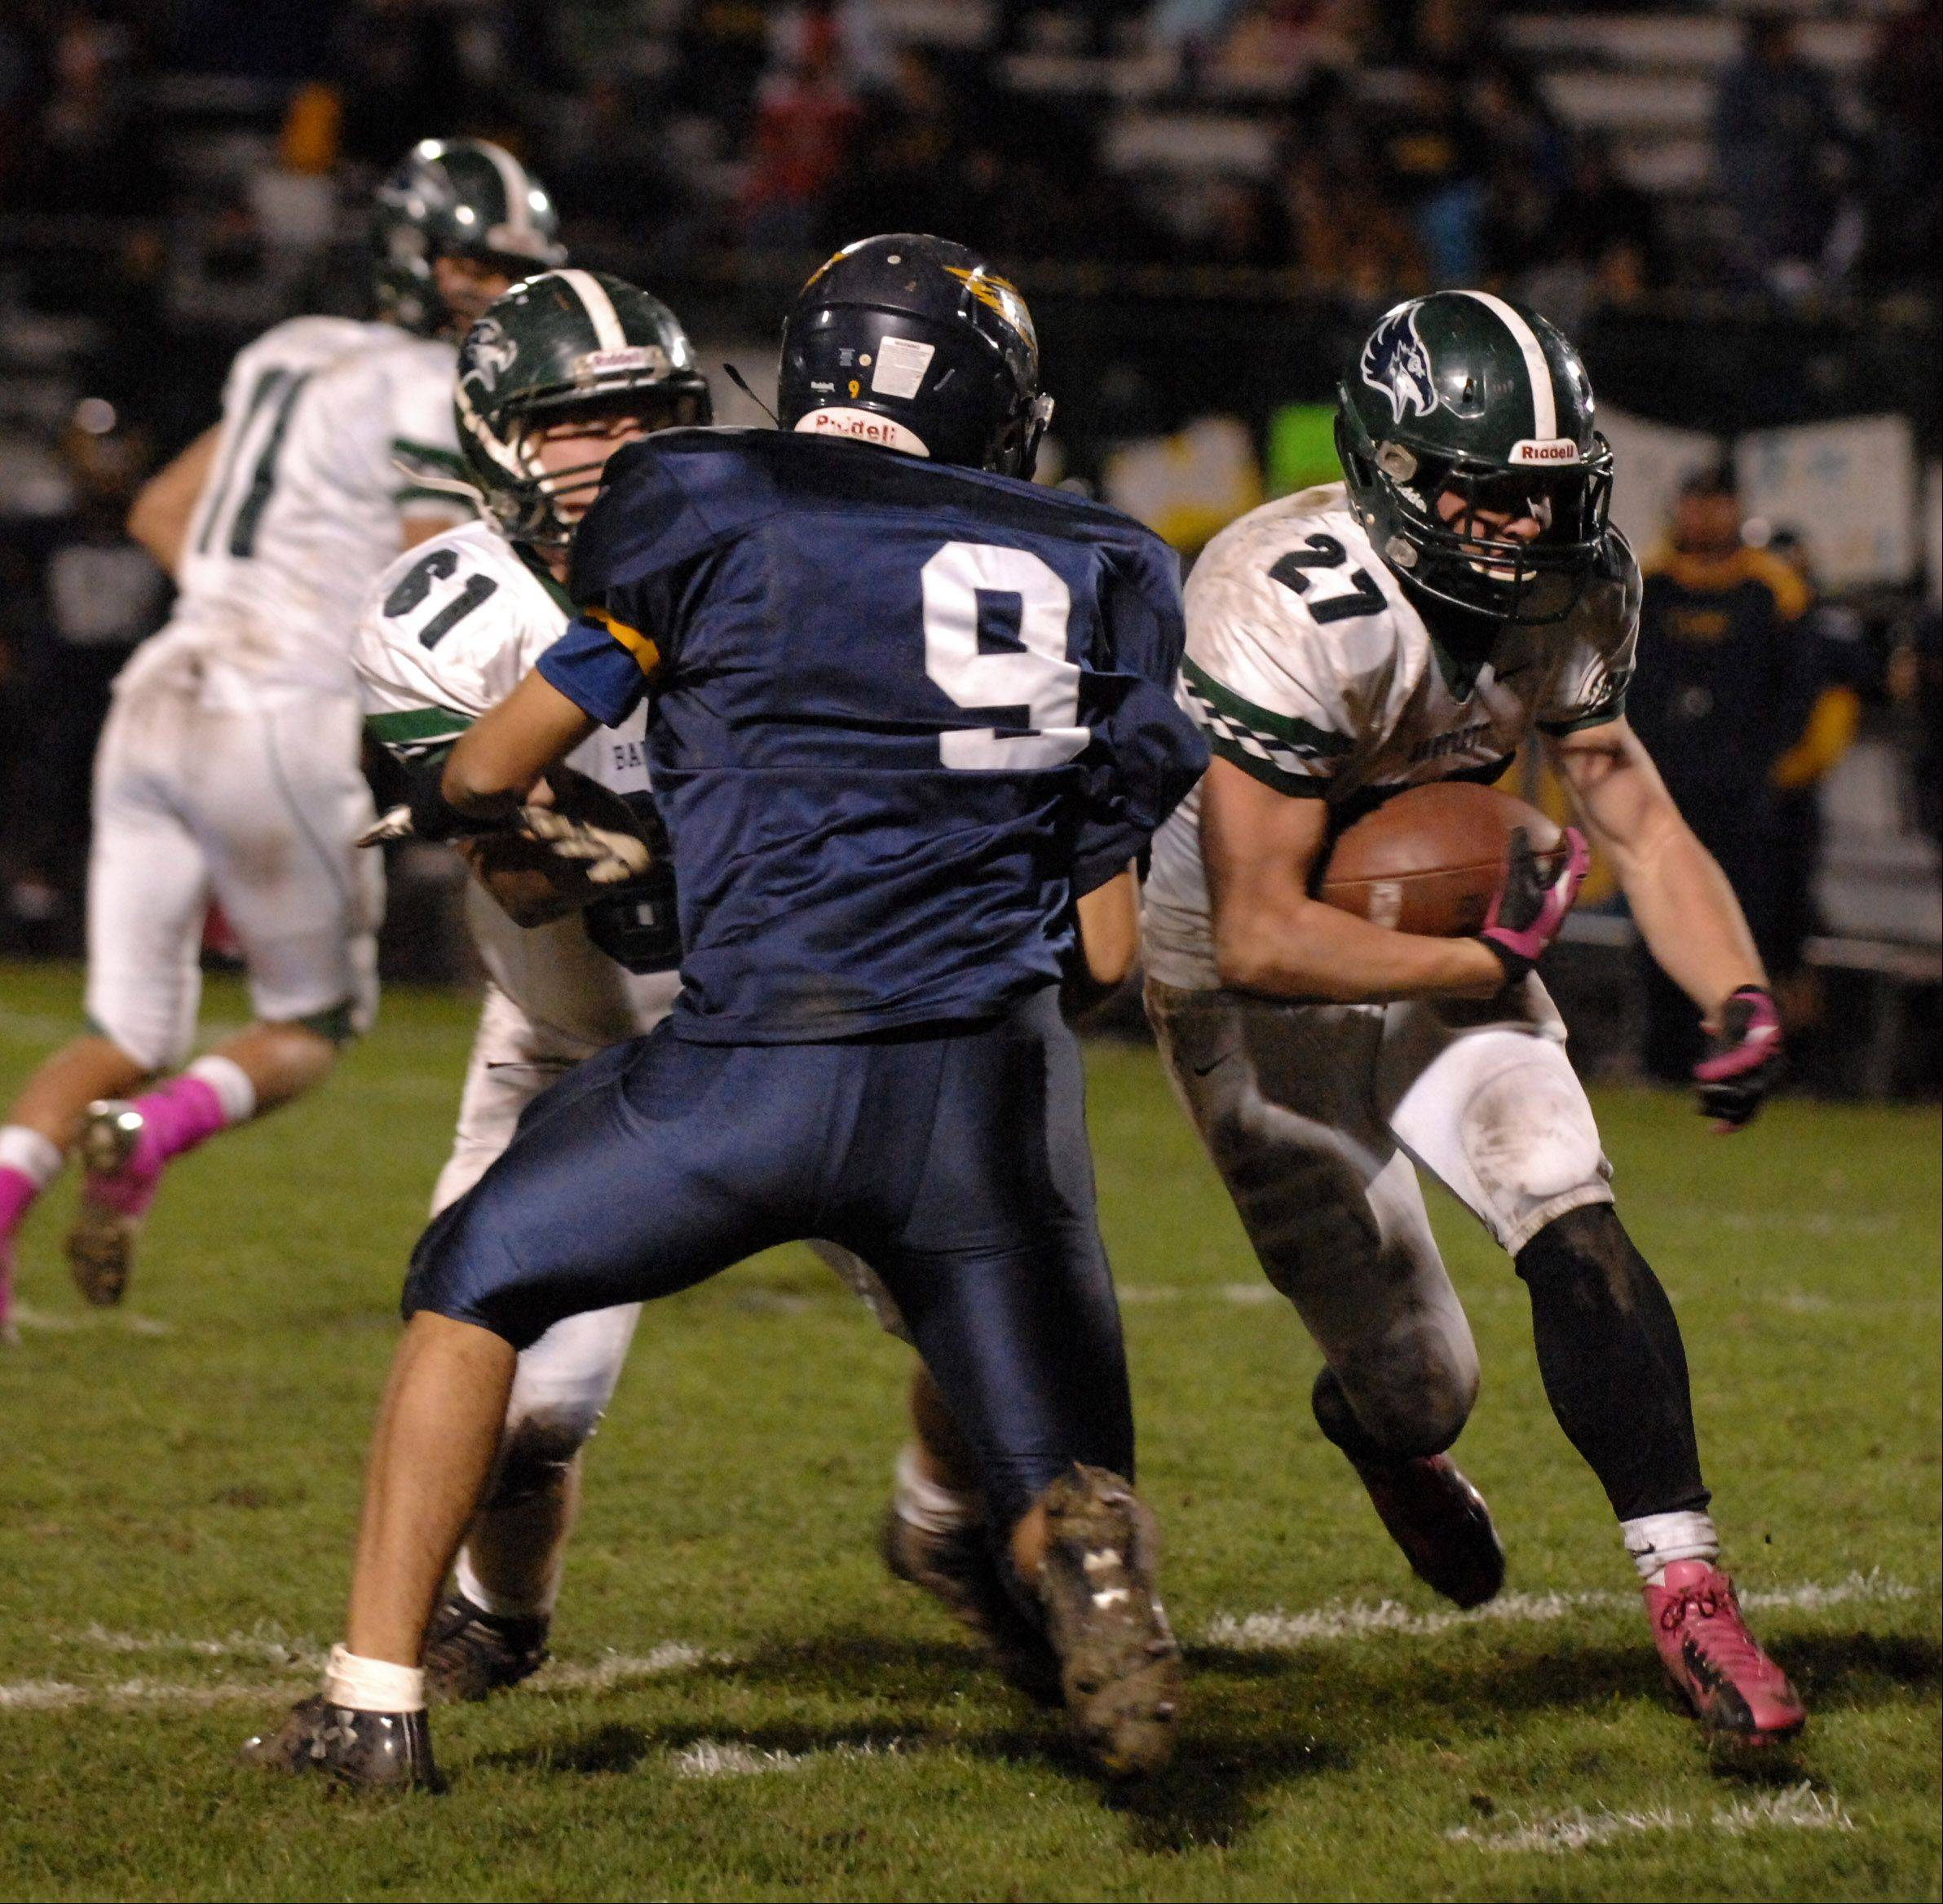 Playoffs - Round 1 - Images from the Bartlett vs. Leyden football game Friday, October 26, 2012.